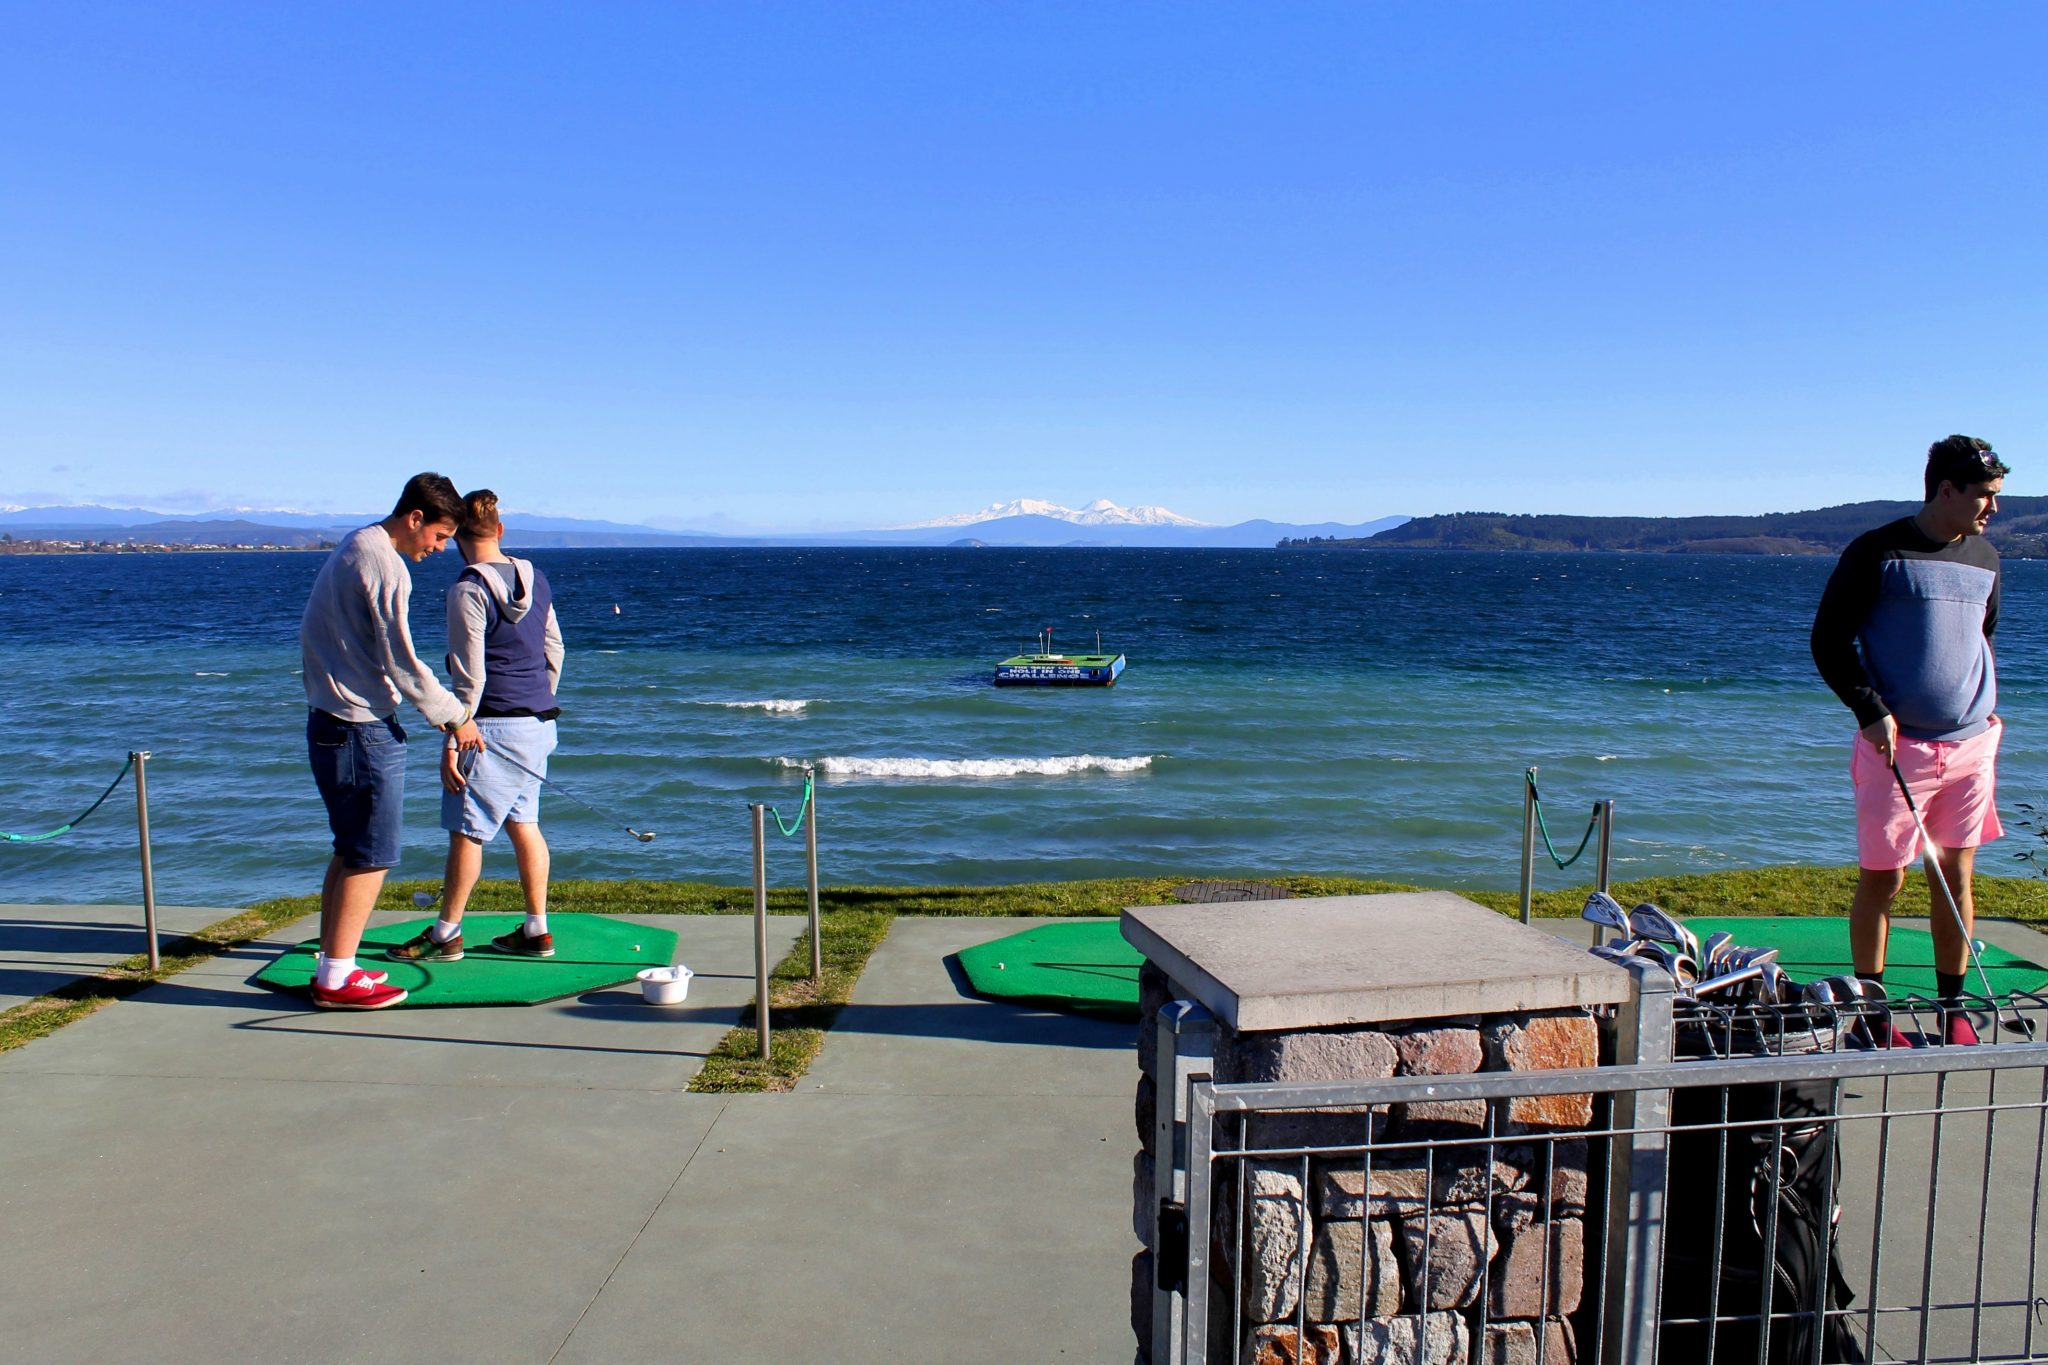 Hole in One Challenge, Taupo